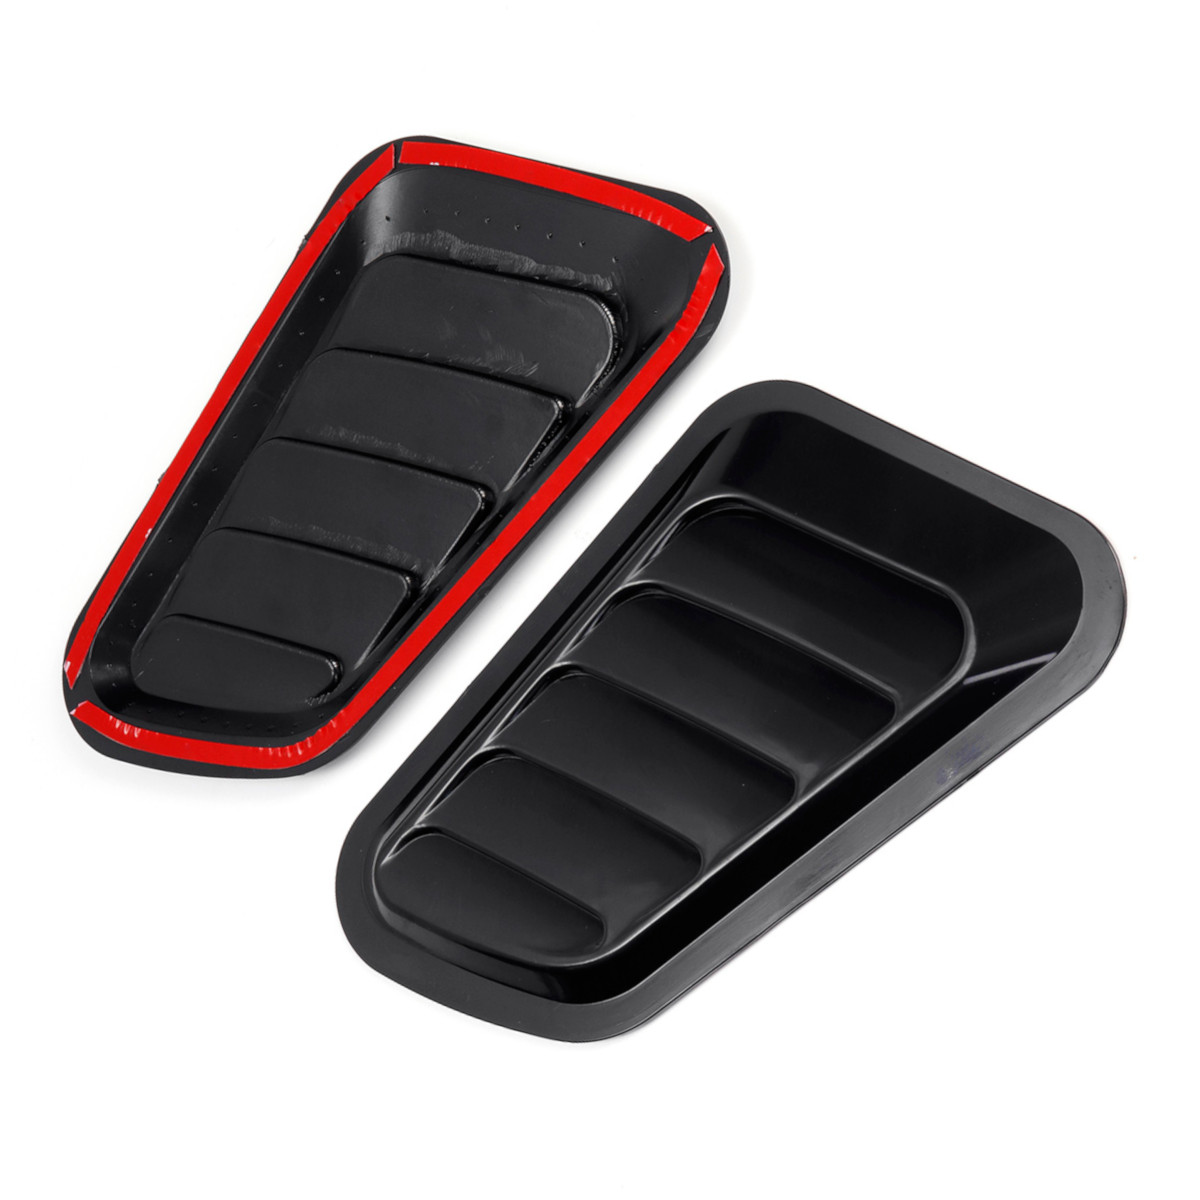 cheapest 2Pcs ABS Car Front Engine Cover Sticker Car Decorative Air Outlet Flow Fender Intake Scoop Turbo Bonnet Vent Cover Hood